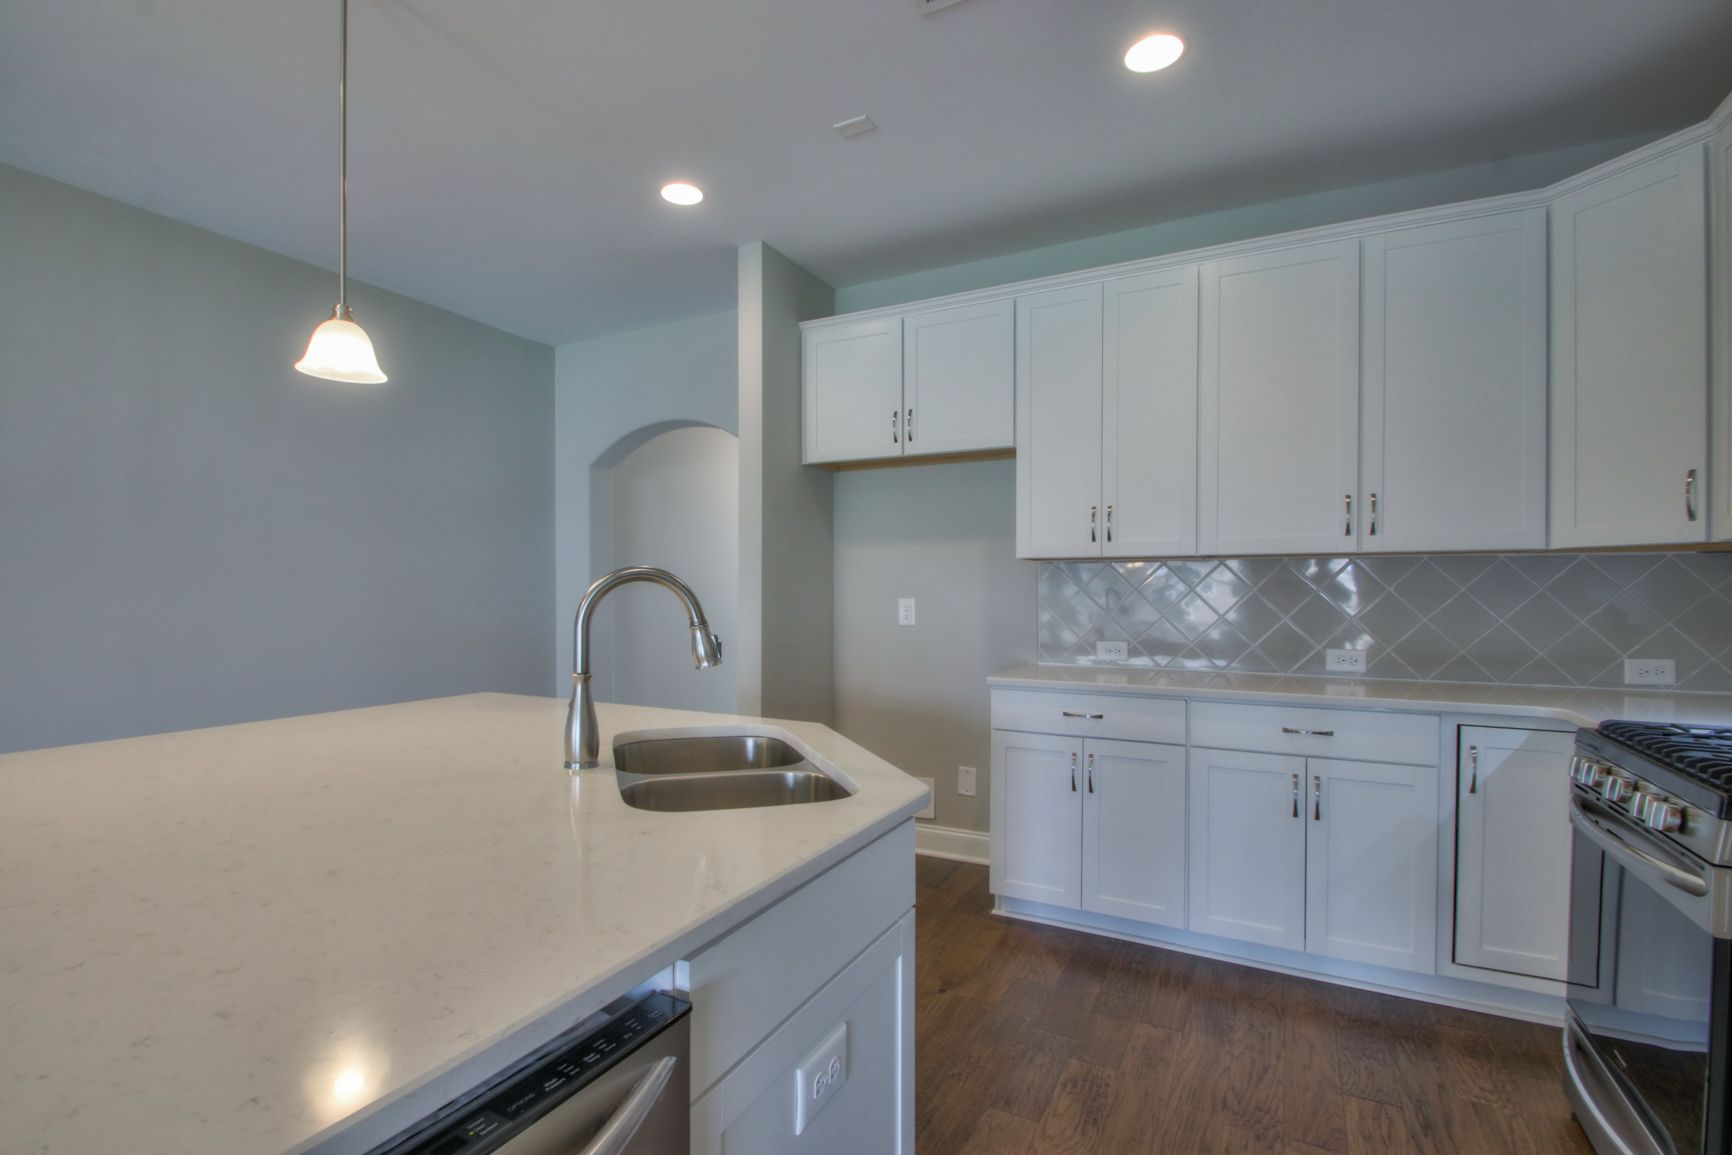 Kitchen featured in The Cambridge By Goodall Homes in Owensboro, KY